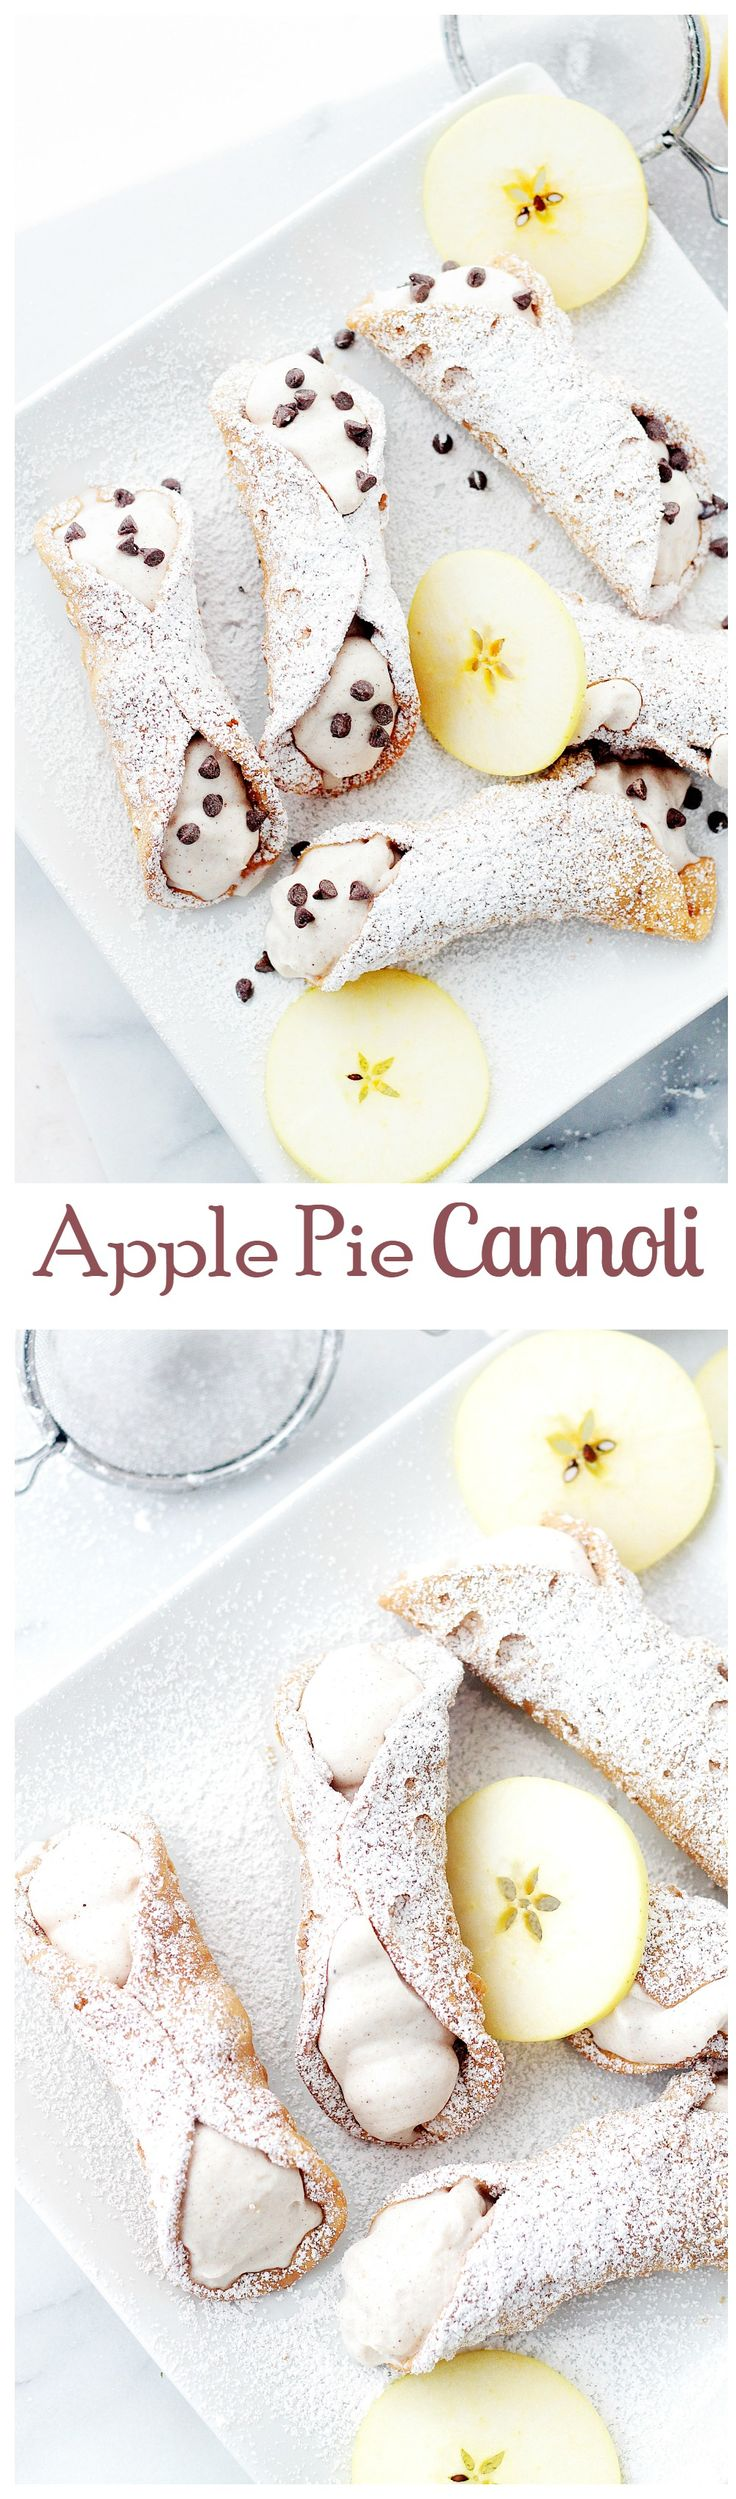 Apple Pie Cannoli